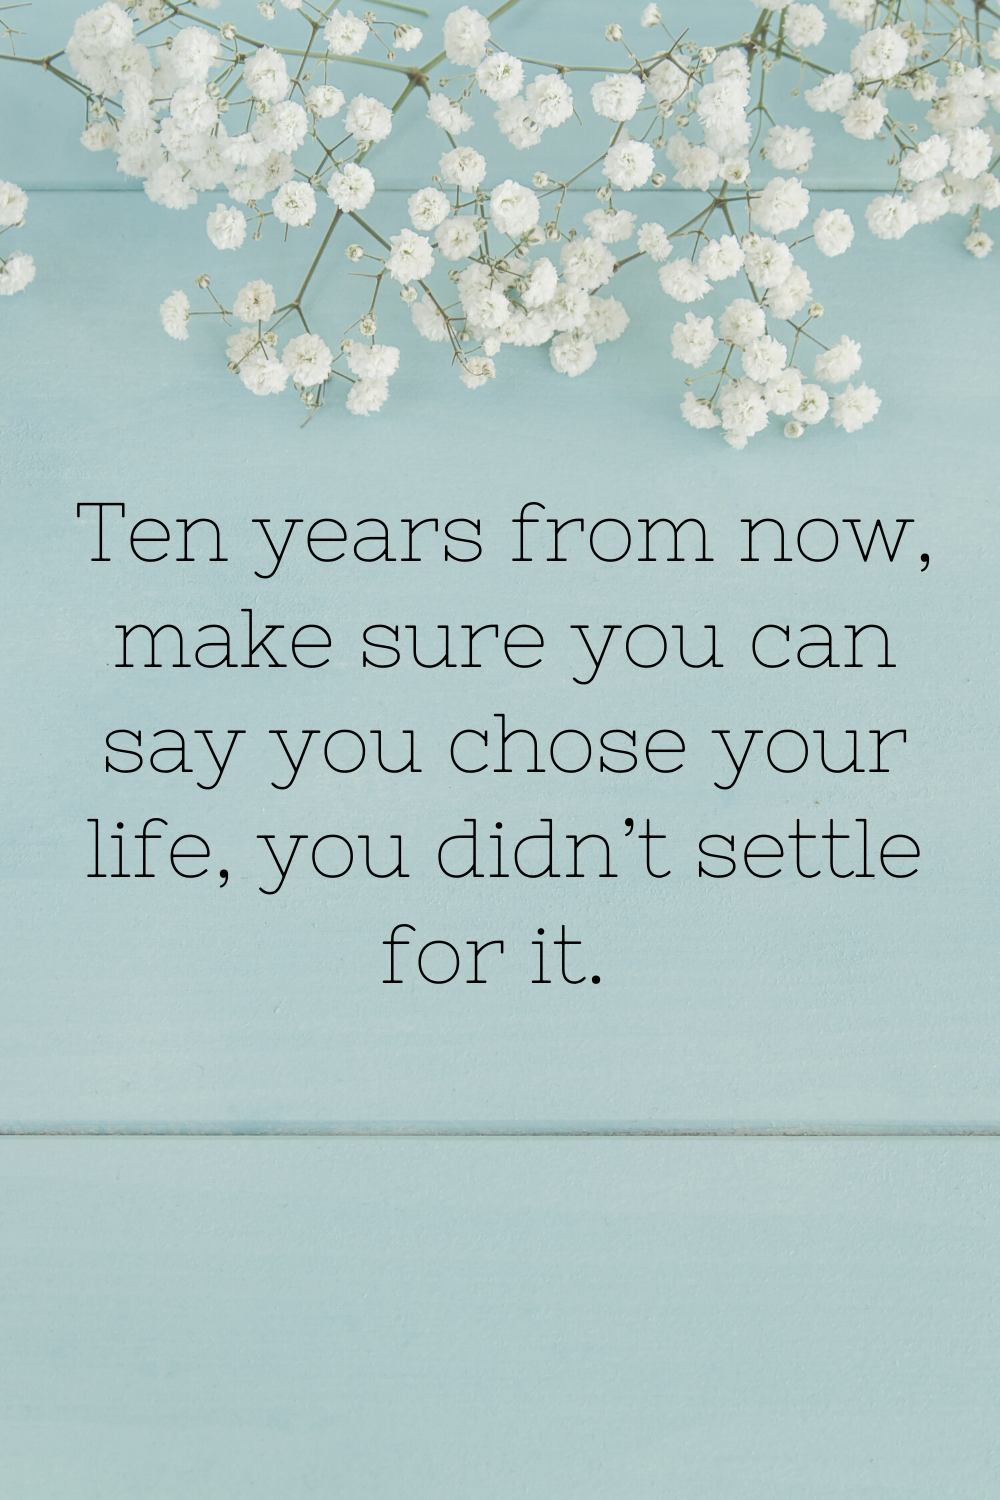 ten years from now make sure you can say you chose your life, you didn't settle for it